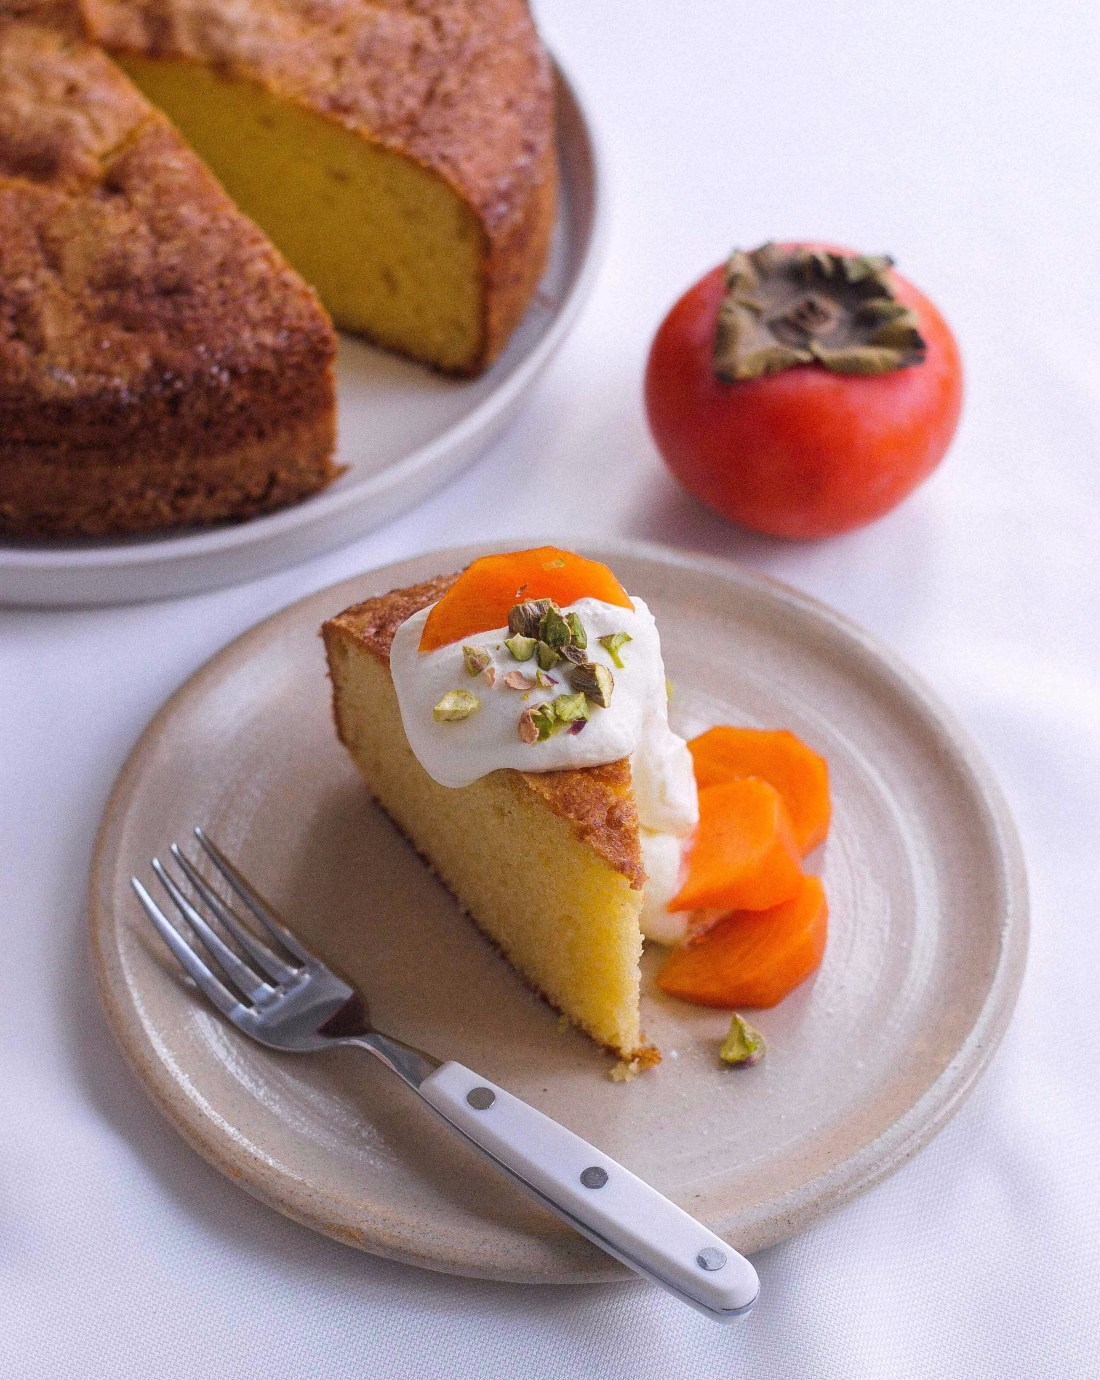 oliveoilcake_persimmons-4-e1512670803398.jpg